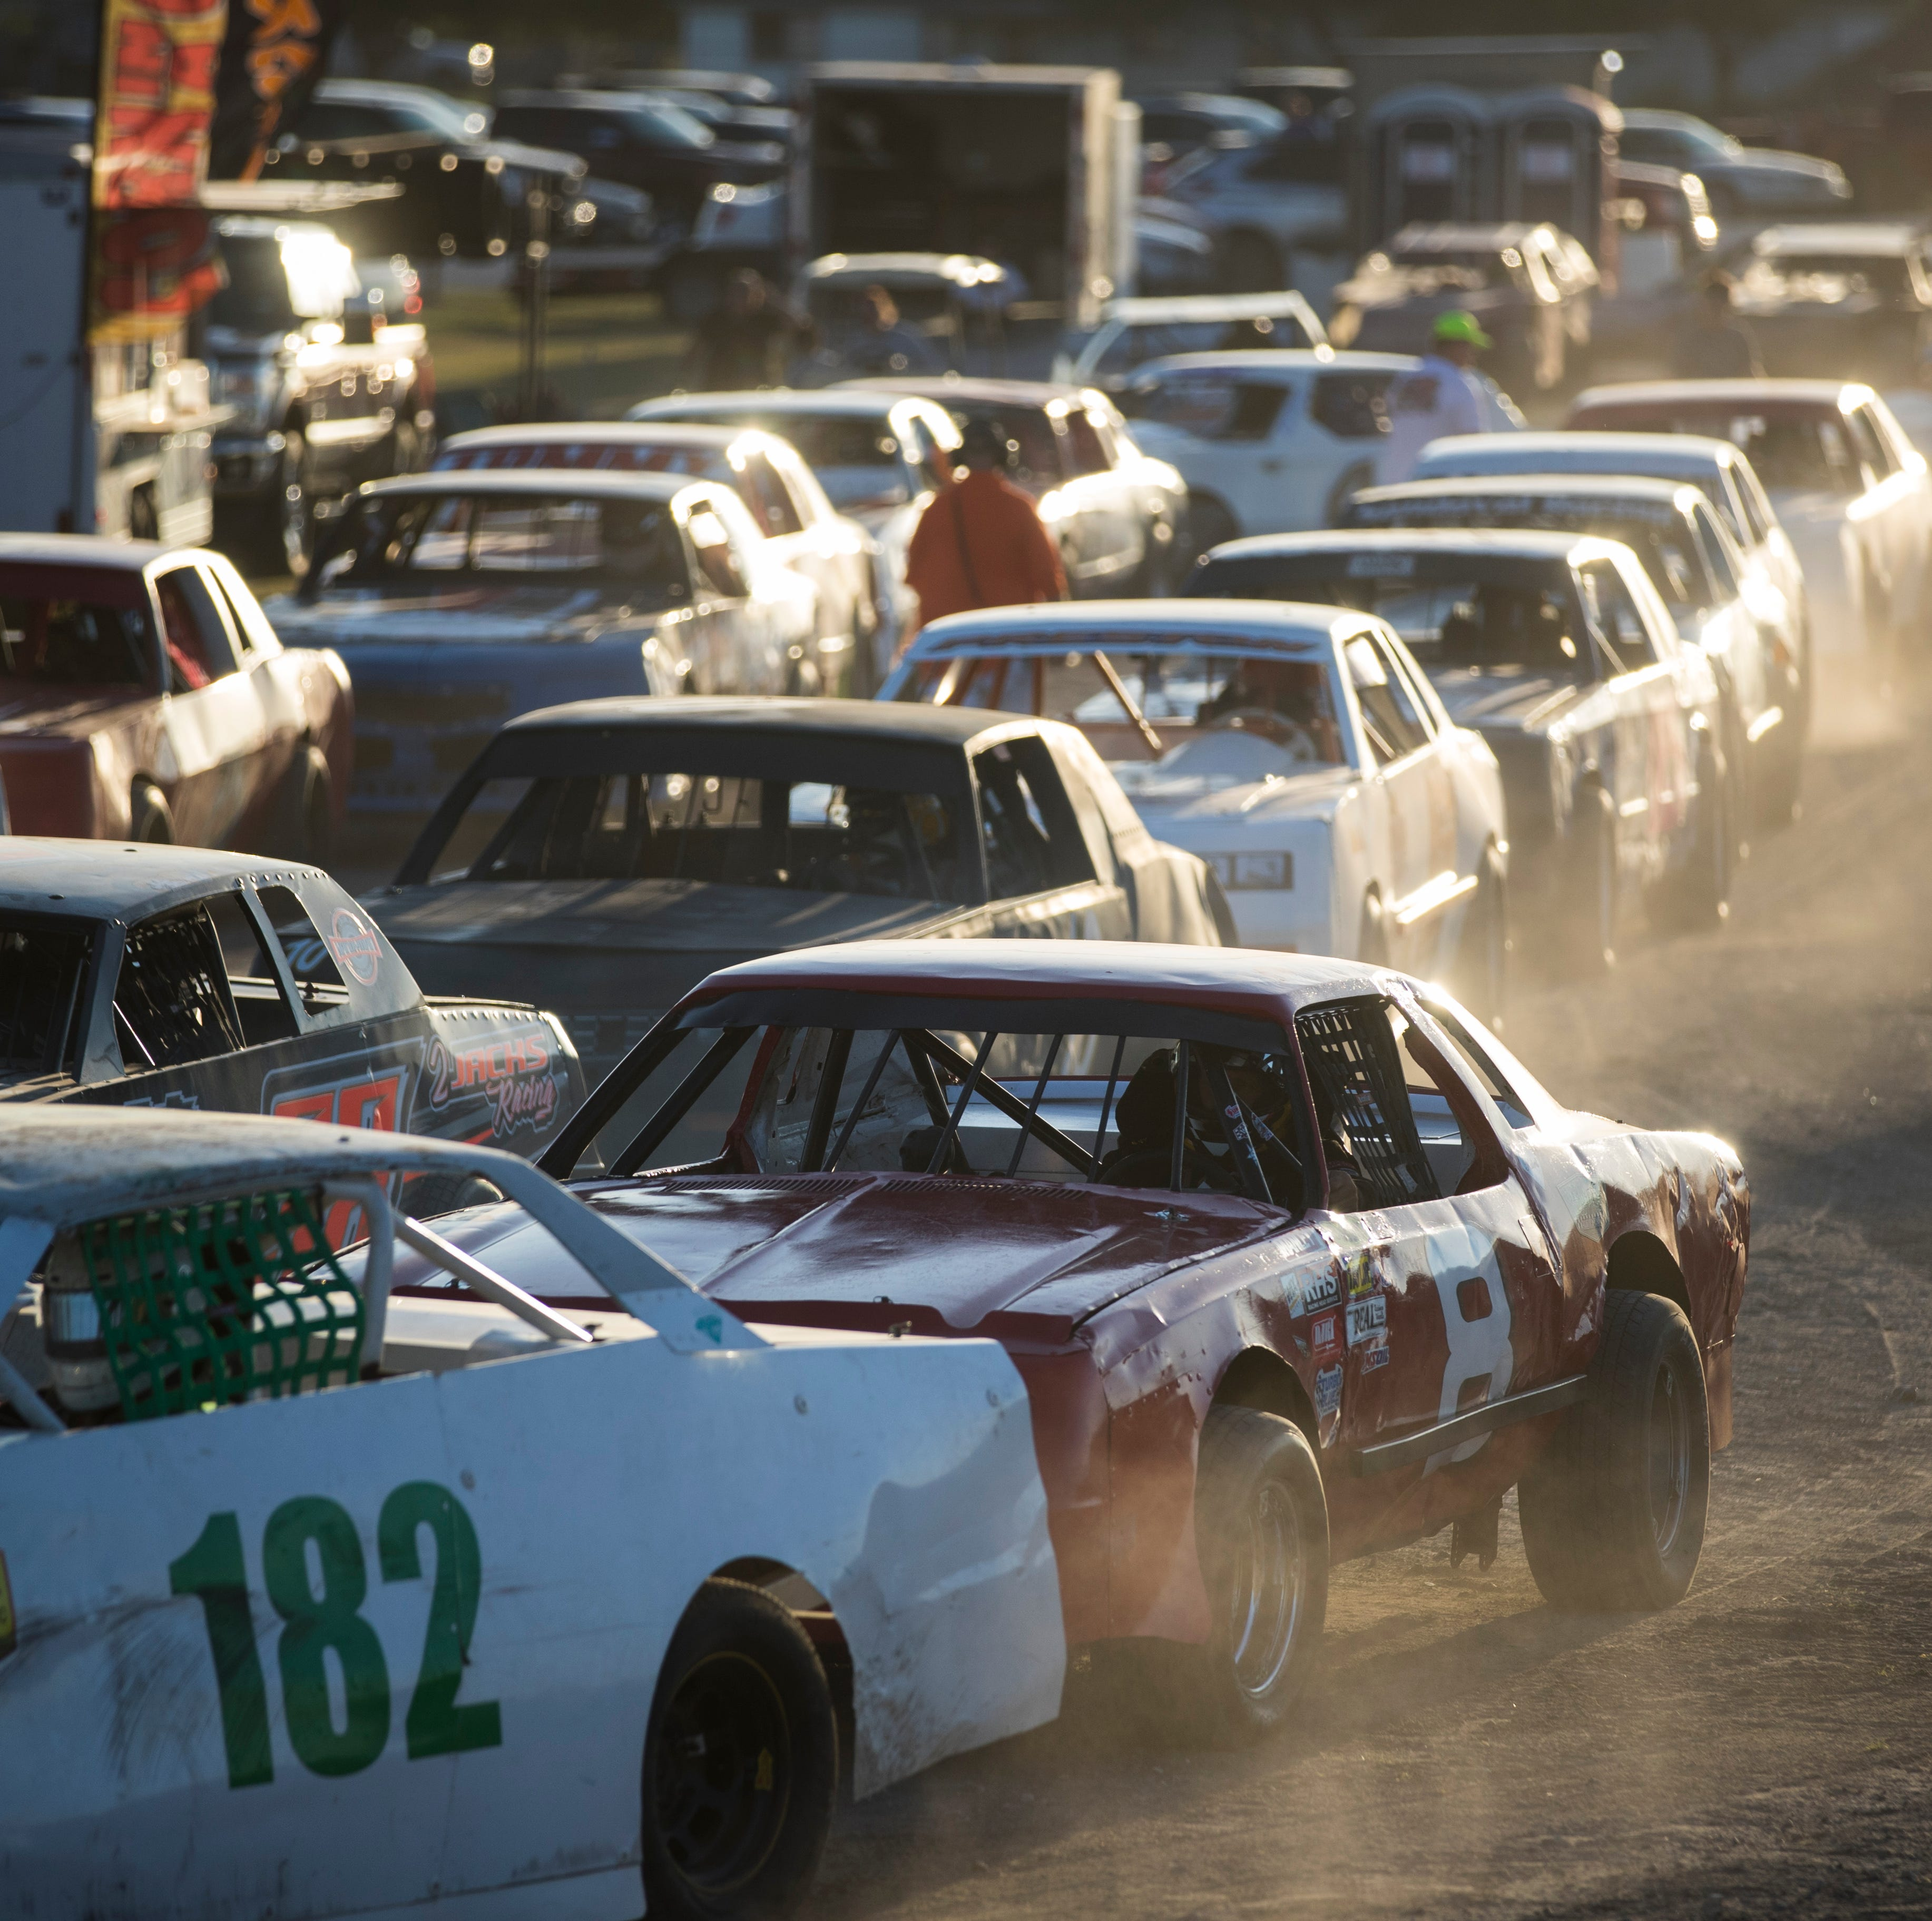 Race night at the South Texas Speedway